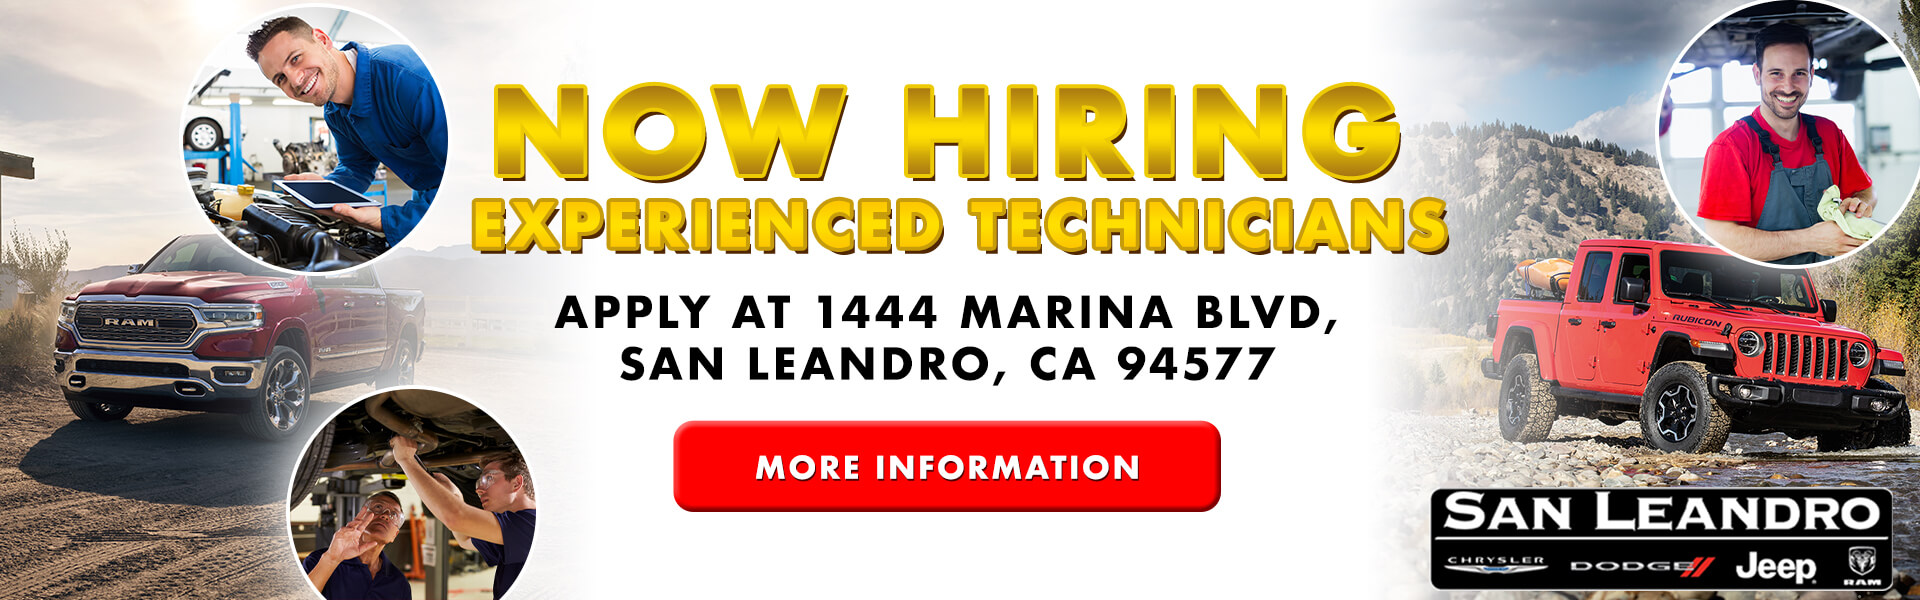 We are Hiring Experienced Technicians